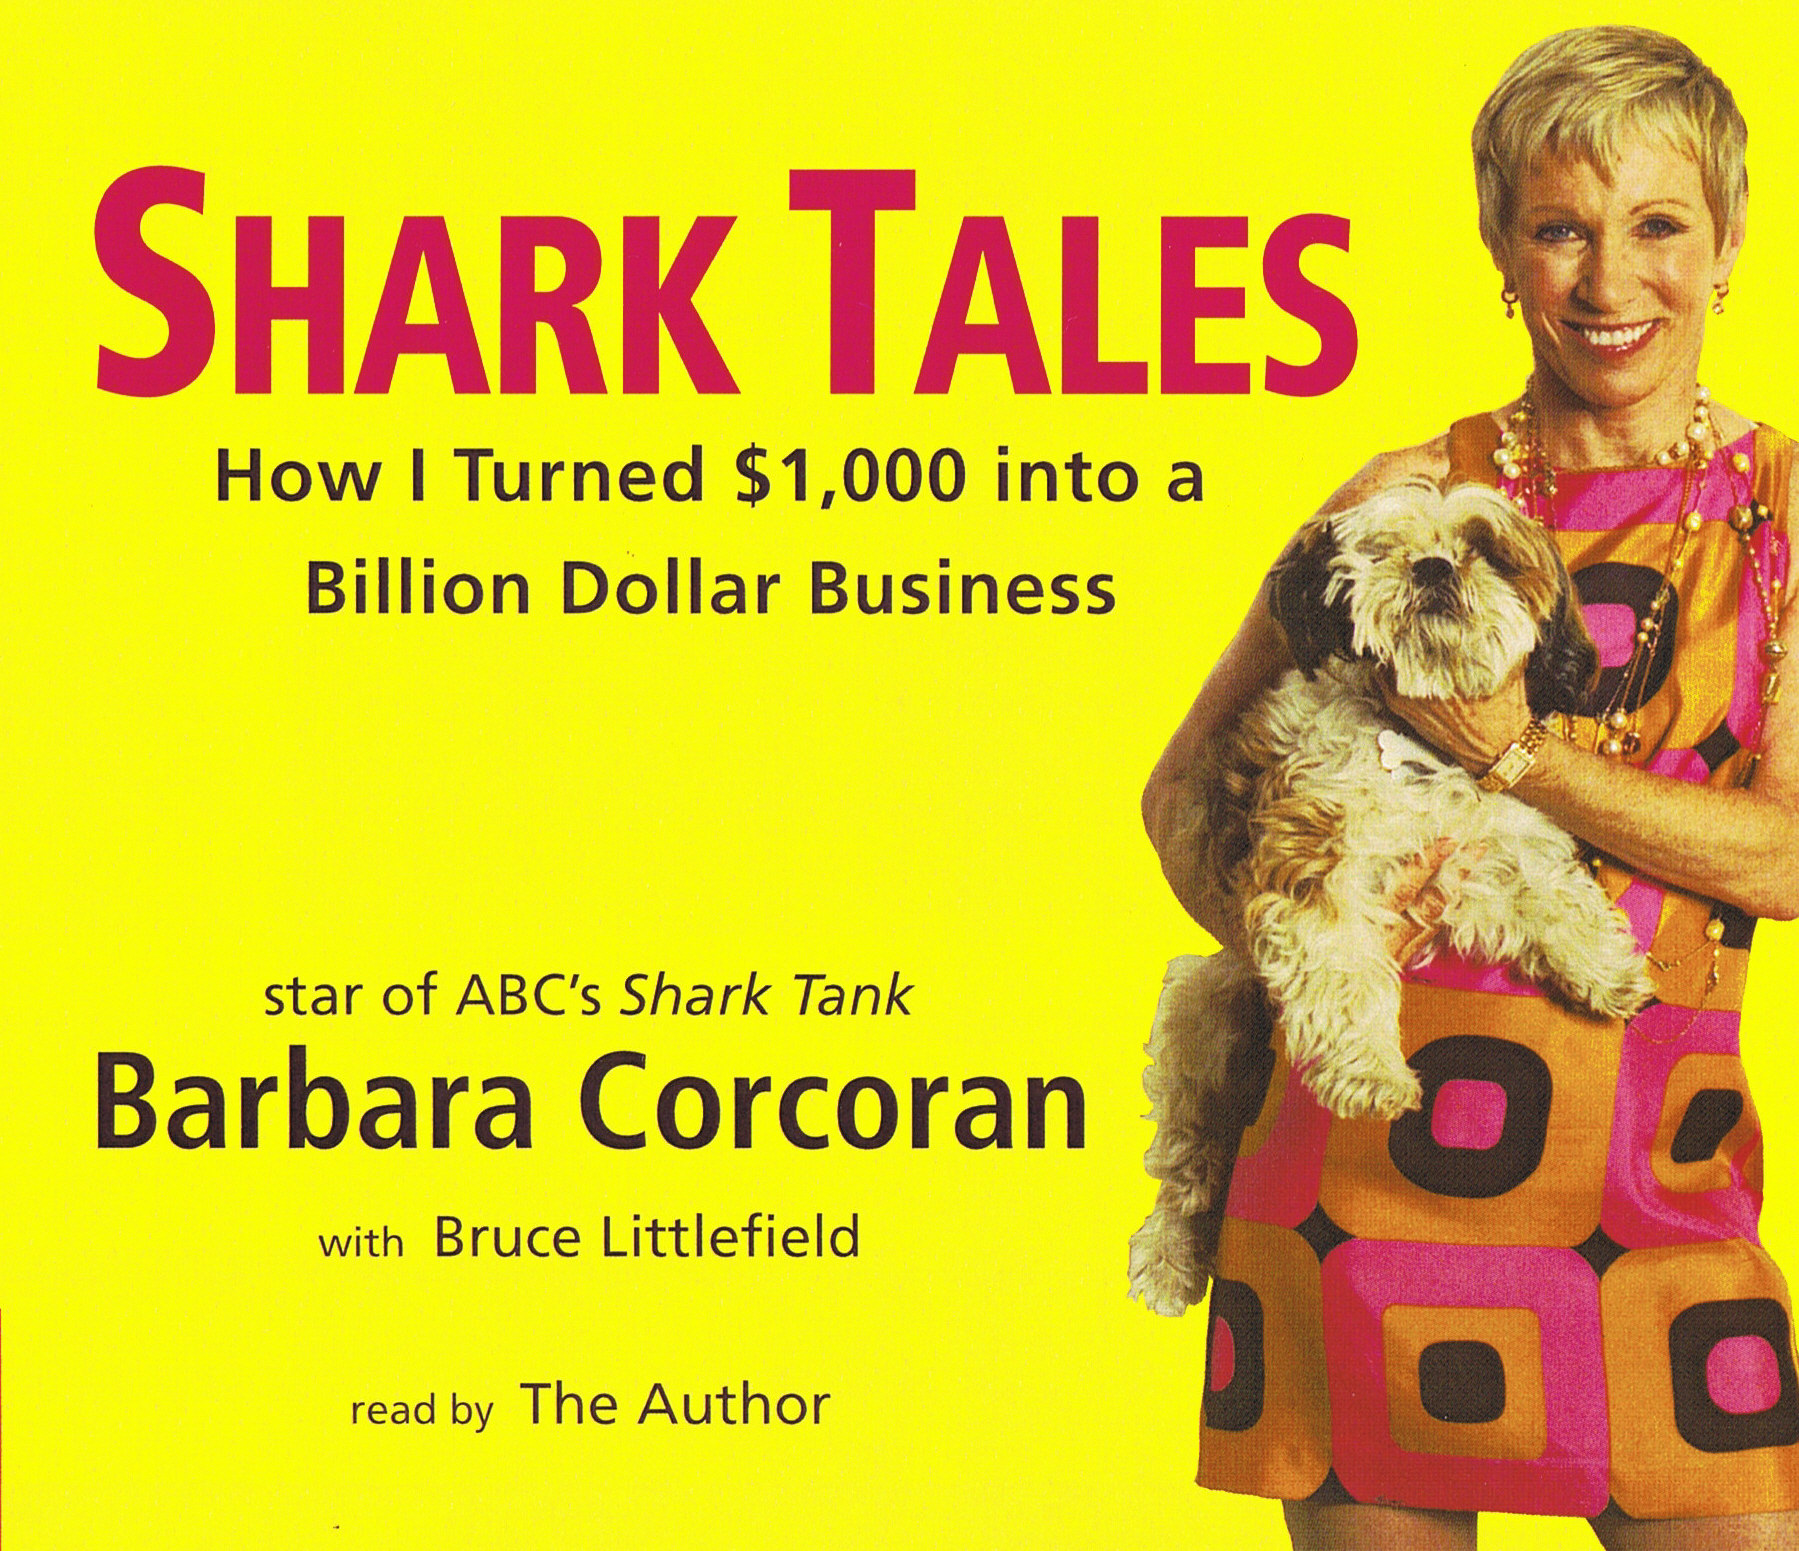 Shark Tales: How I Turned $1,000 into a Billion Dollar Business [4CD]